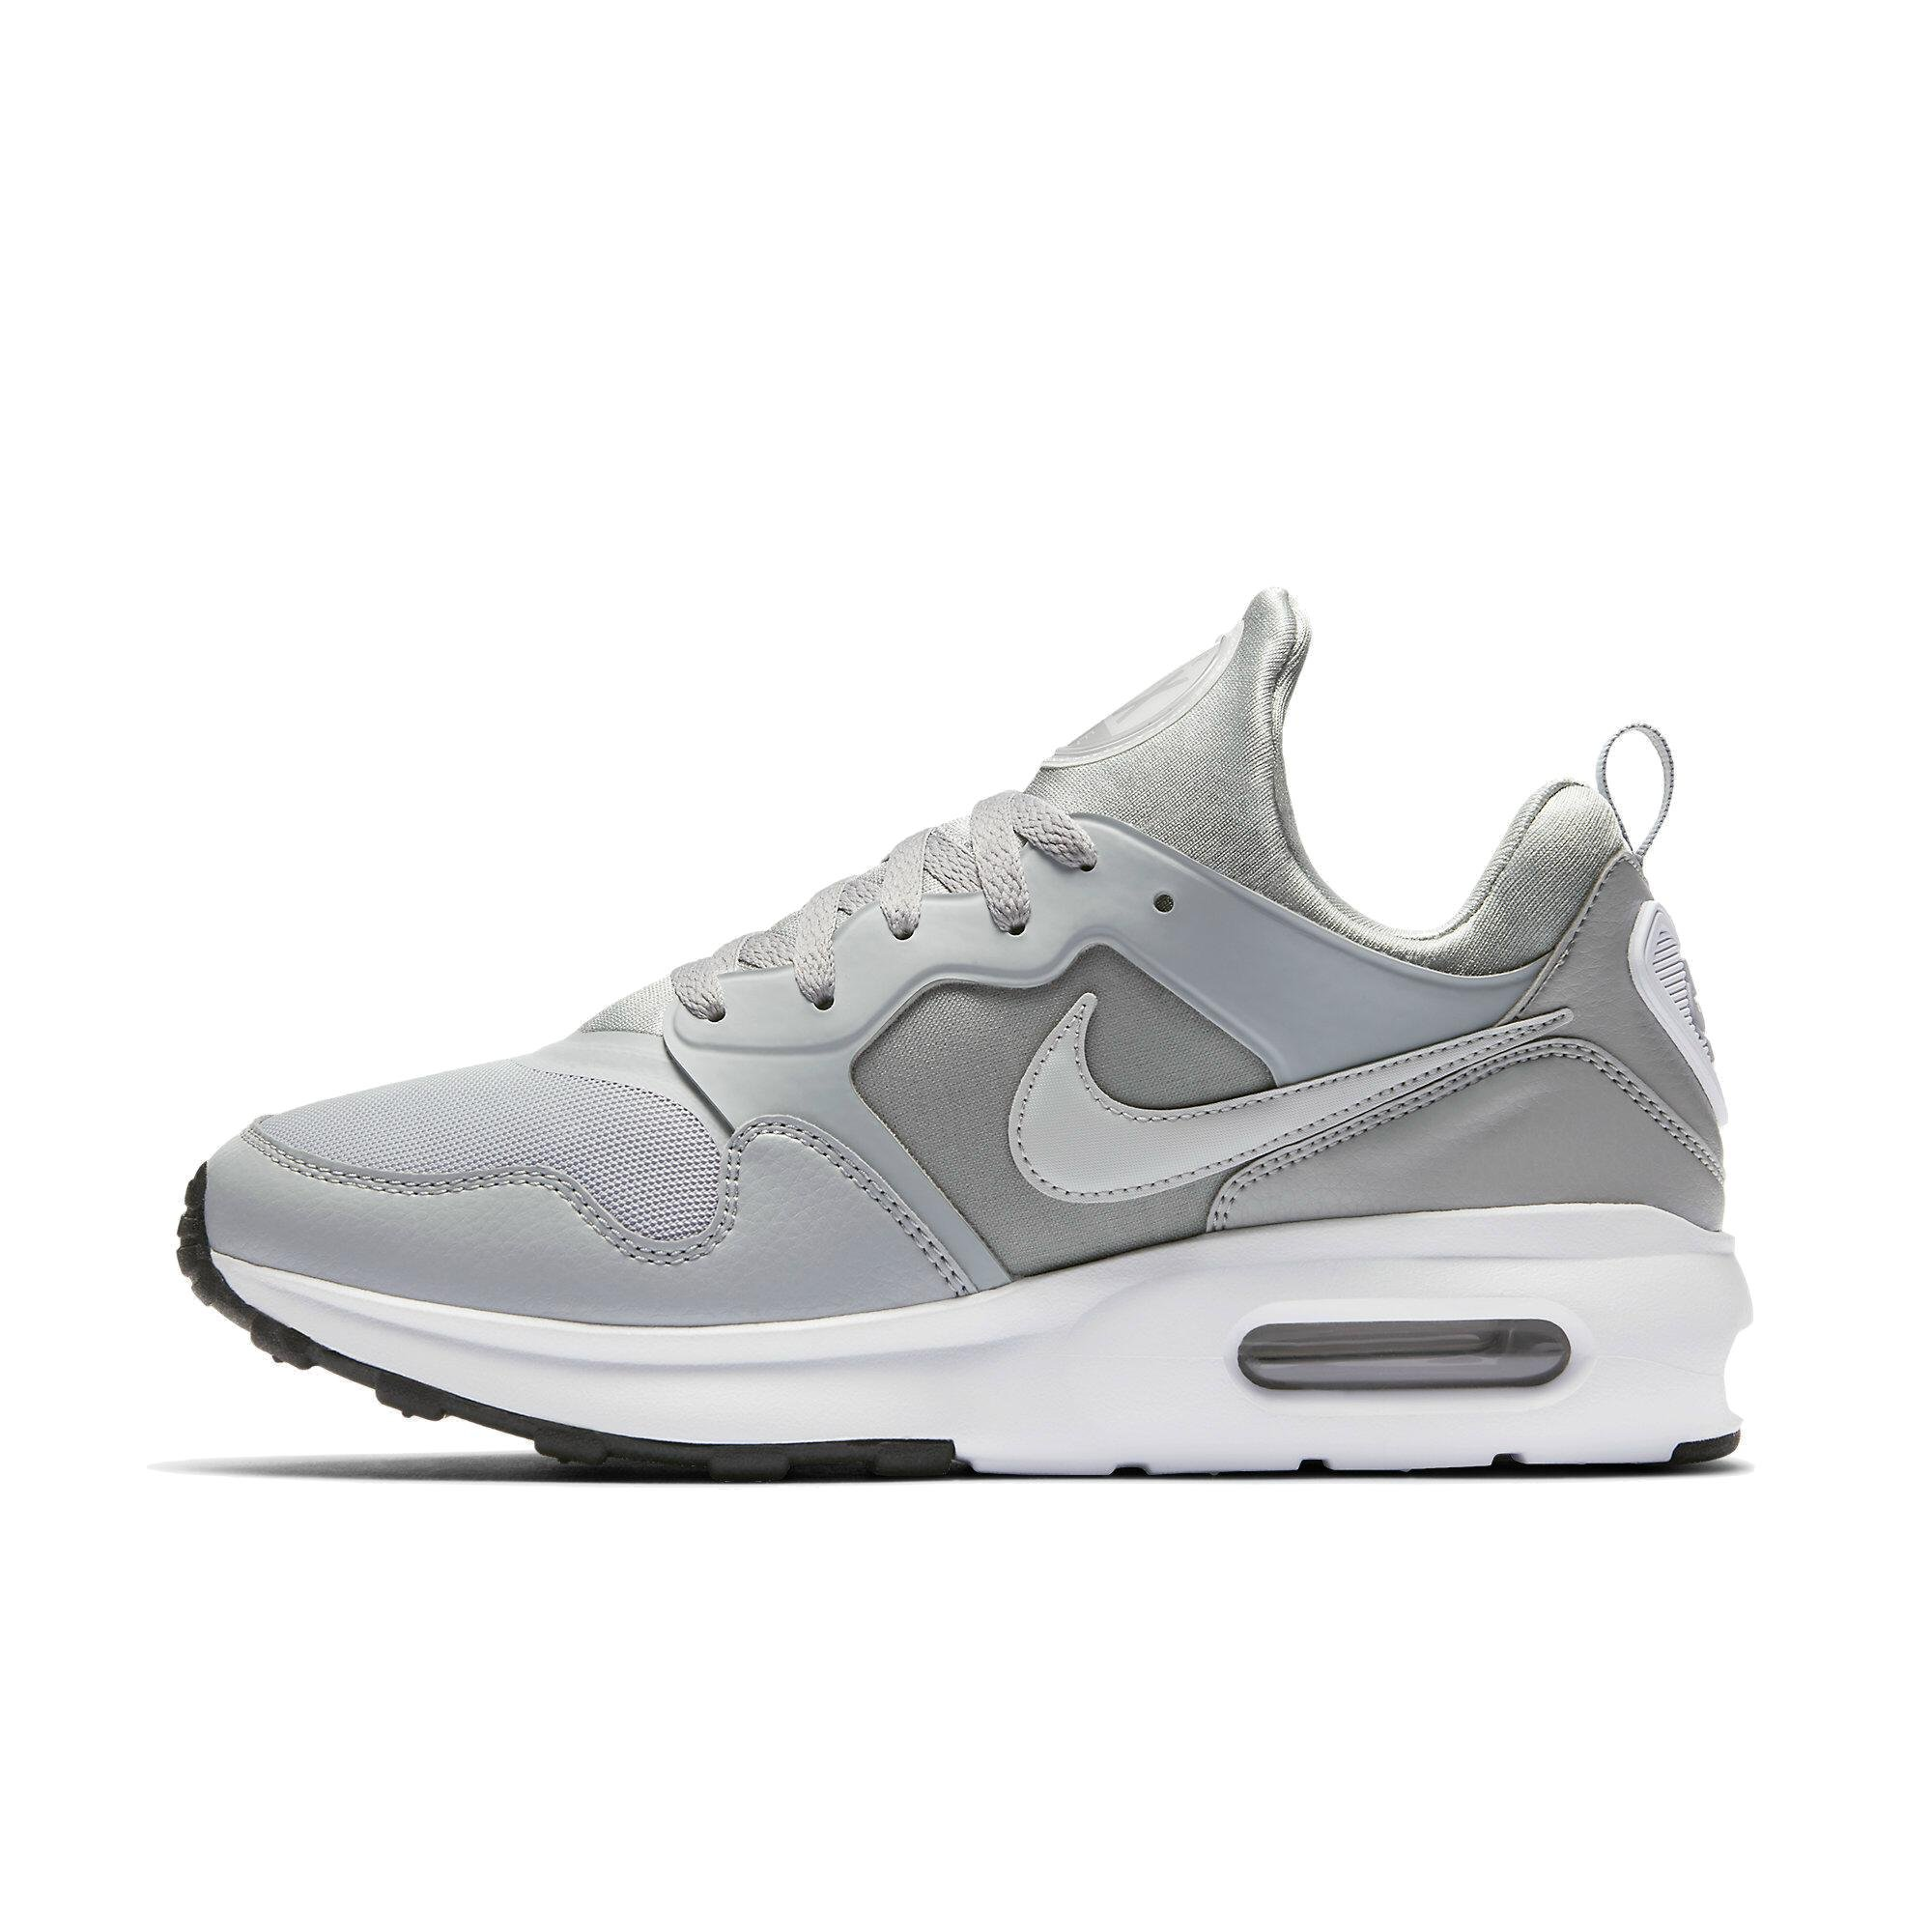 5a147f5afe3a Galleon - NIKE Mens Air Max Prime Running Shoe Wolf Grey Wolf Grey-White 11